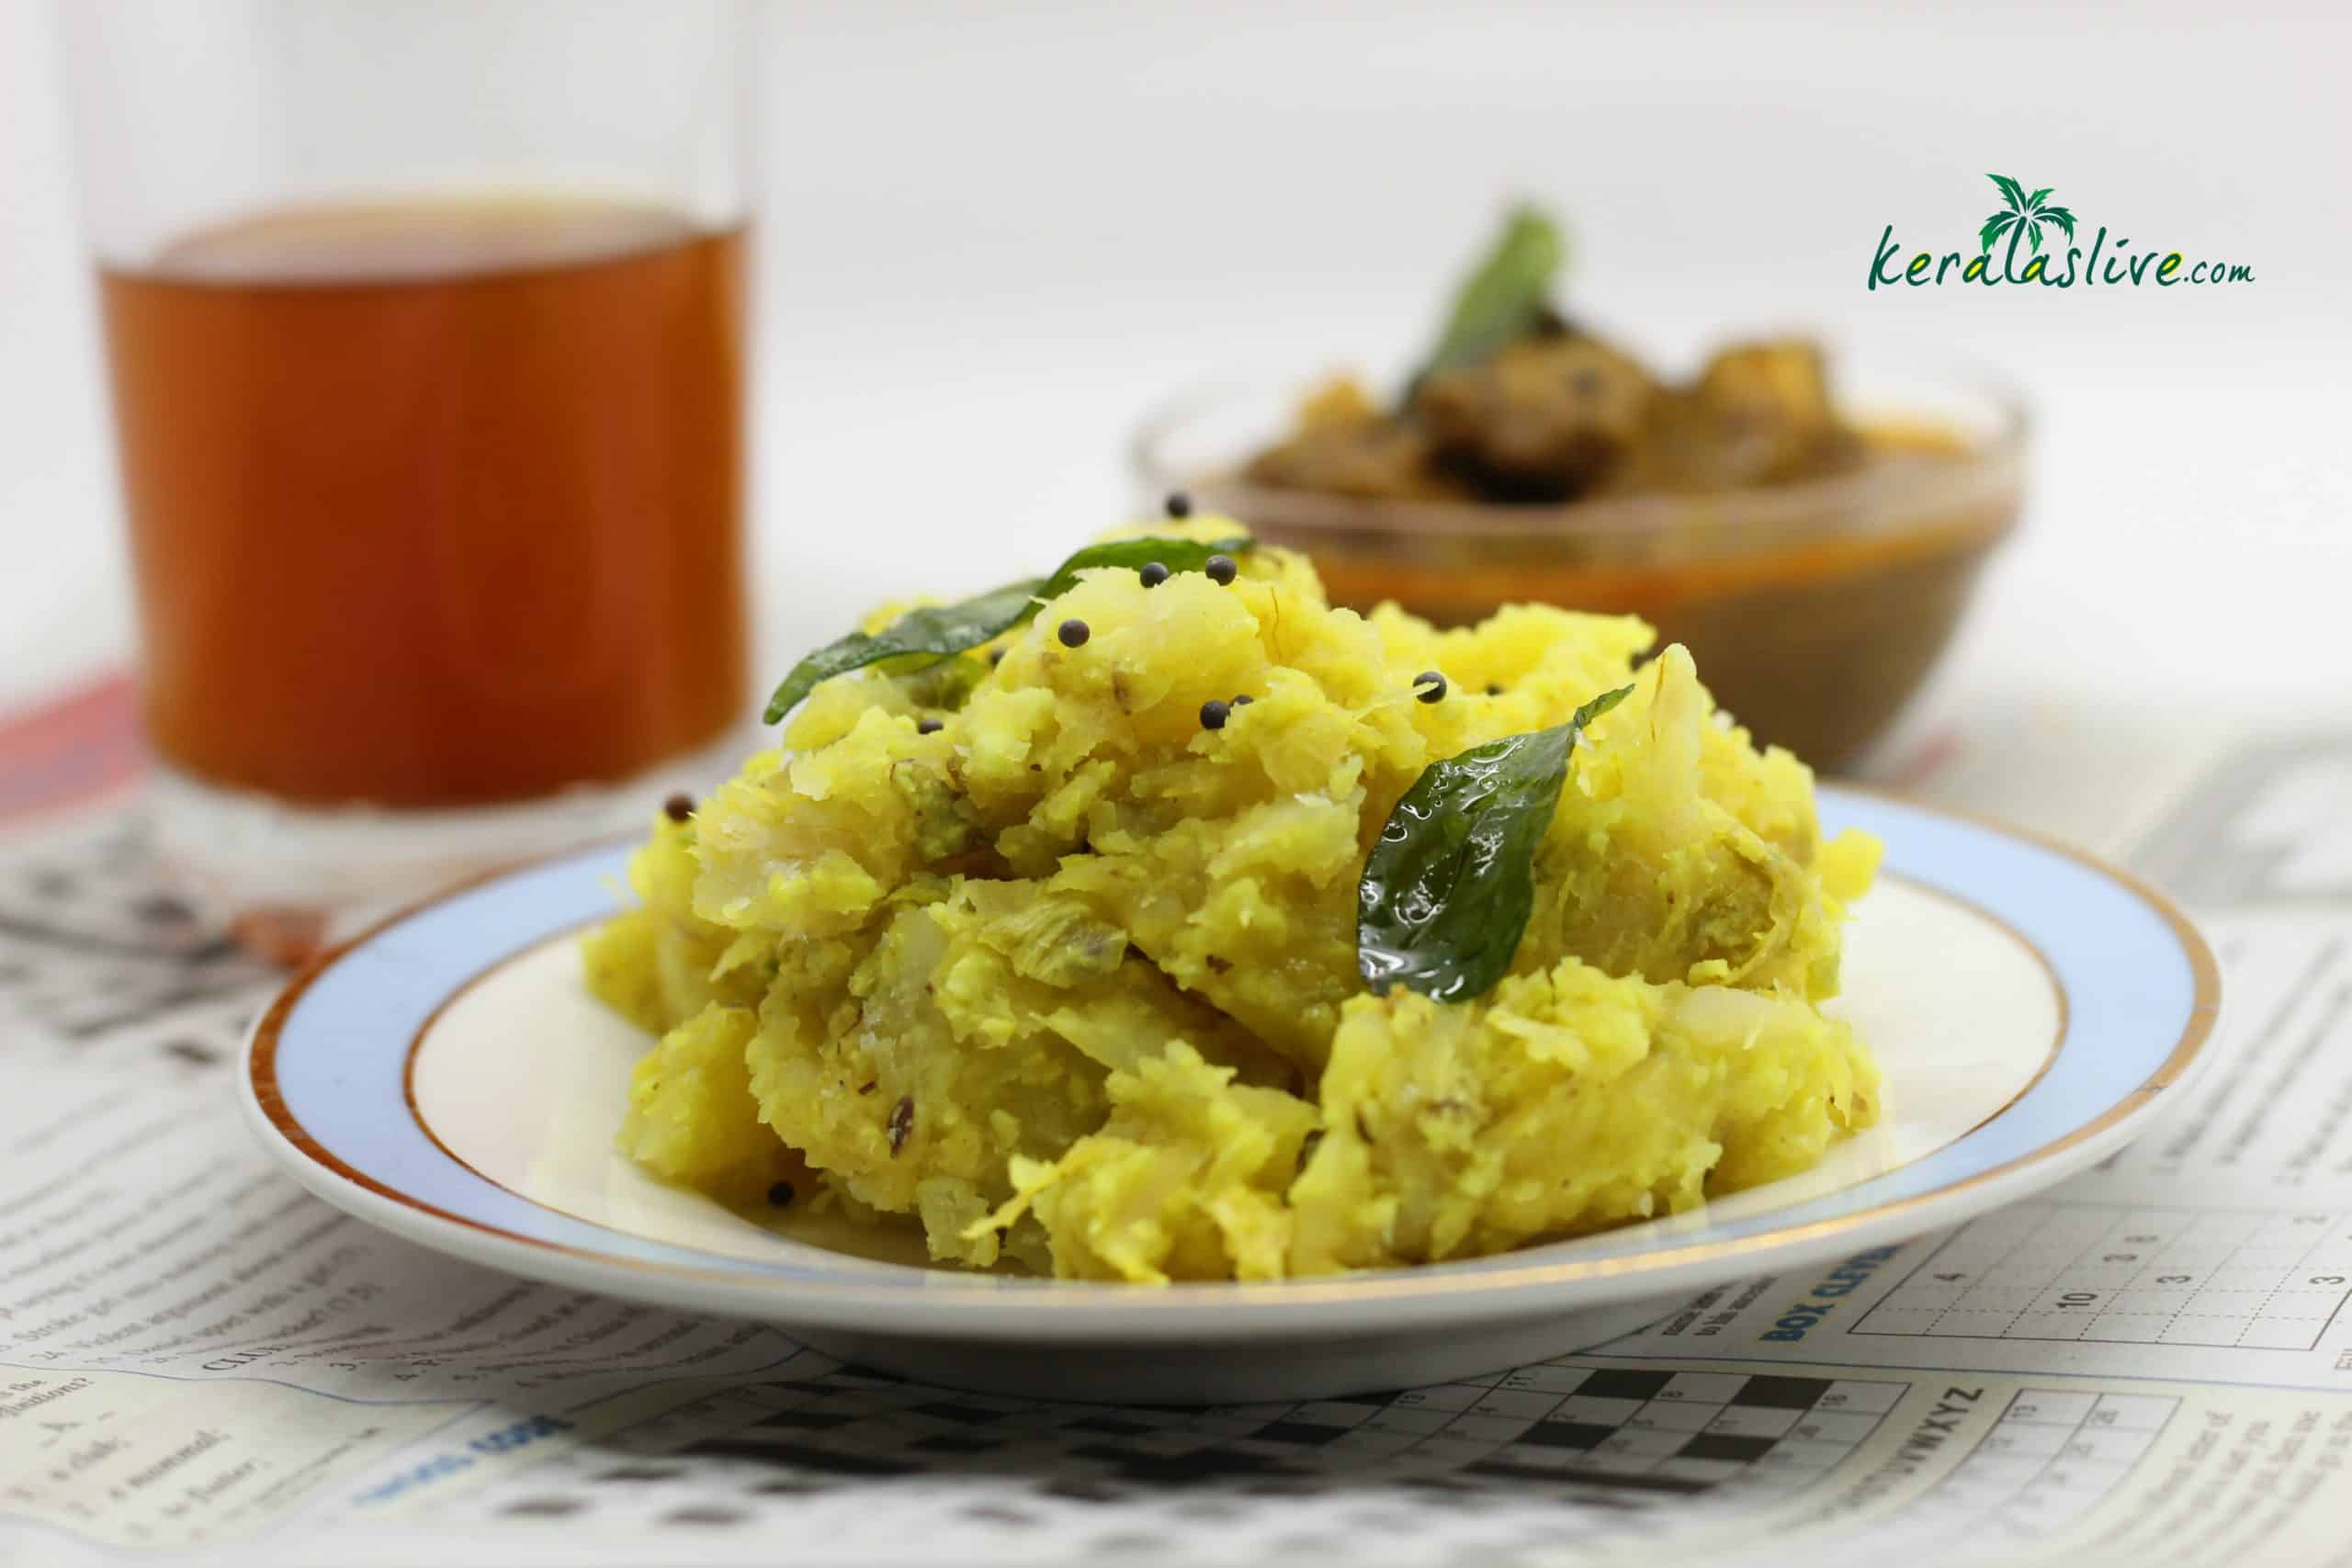 df166279e8 Kappa puzhukku /mashed tapioca - along with fish curry/ beef curry is one of